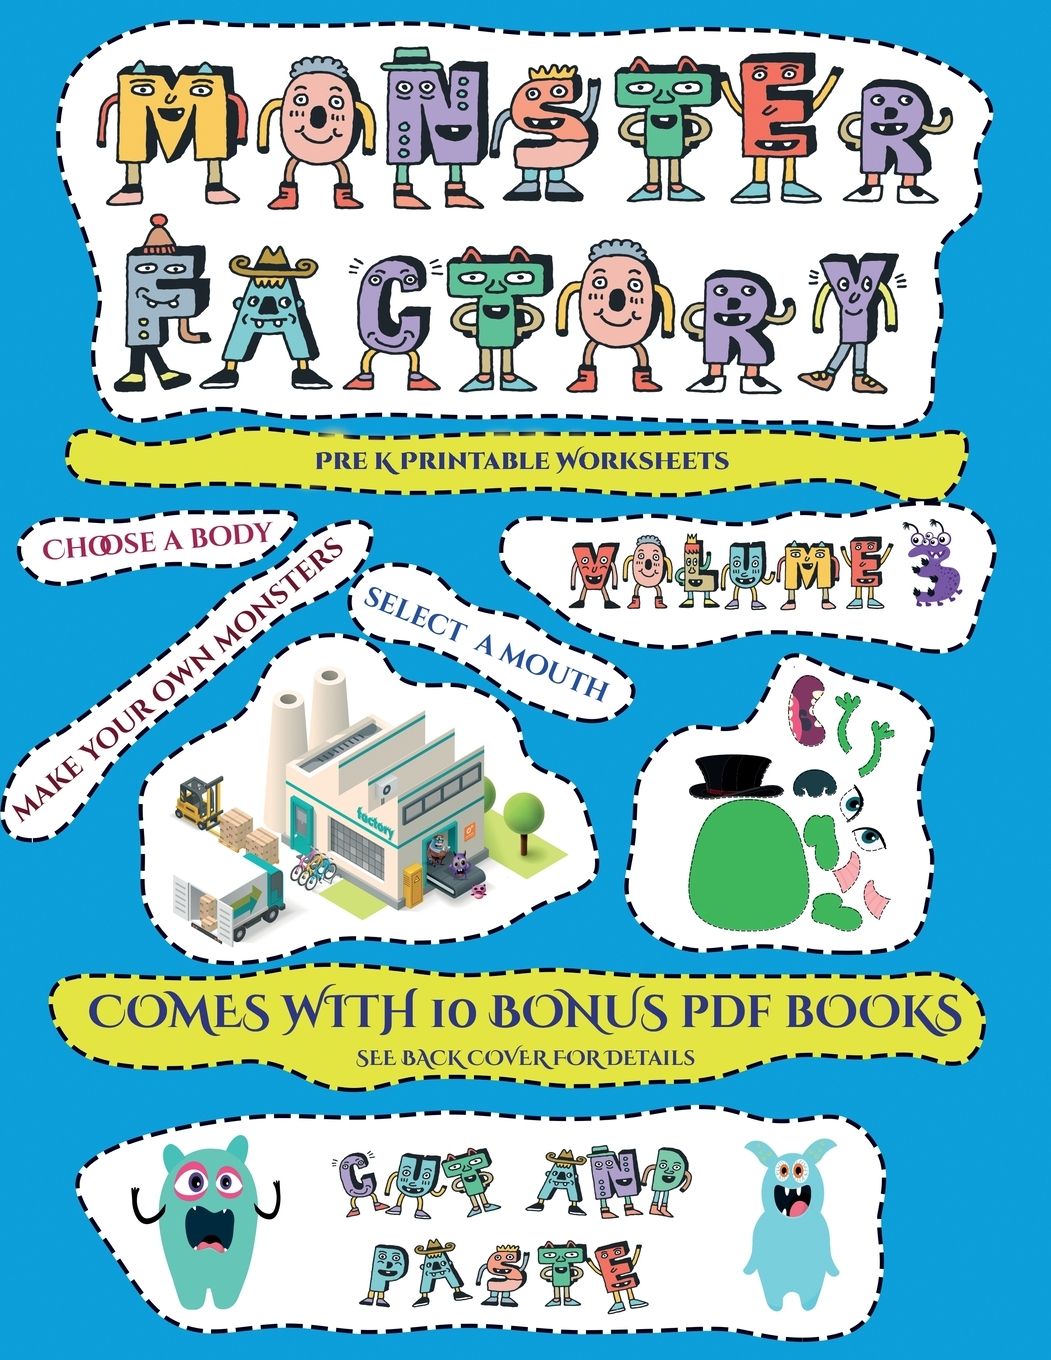 hight resolution of Pre K Printable Worksheets: Pre K Printable Worksheets (Cut and paste  Monster Factory - Volume 3) : This book comes with collection of  downloadable PDF books that will help your child make